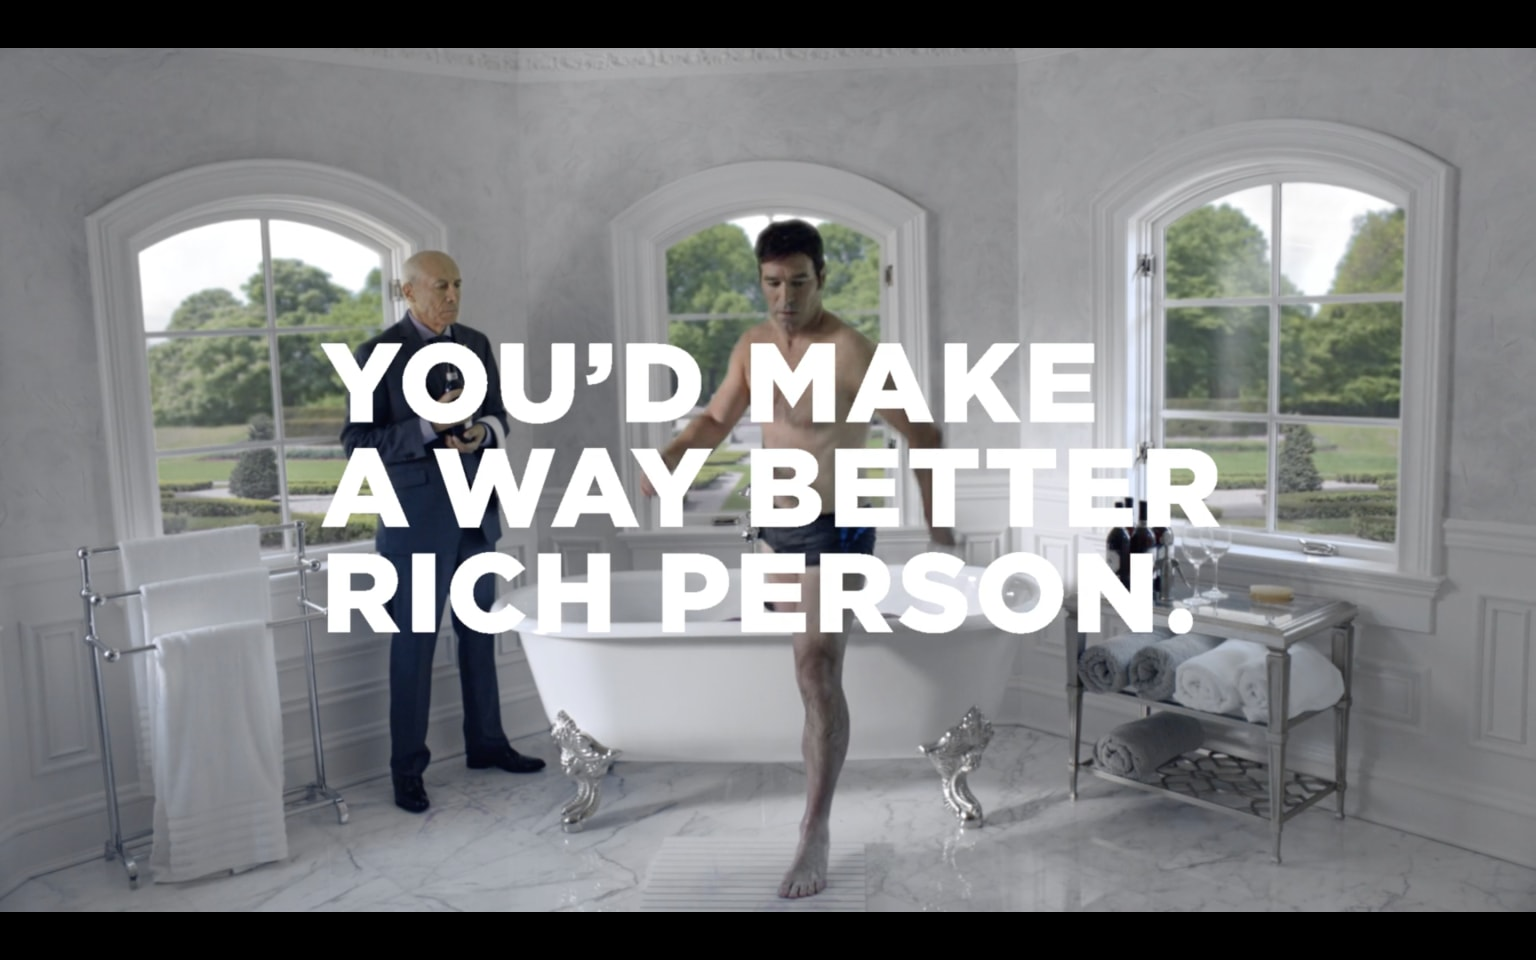 New York Lotto - You'd Make A Way Better Rich Person